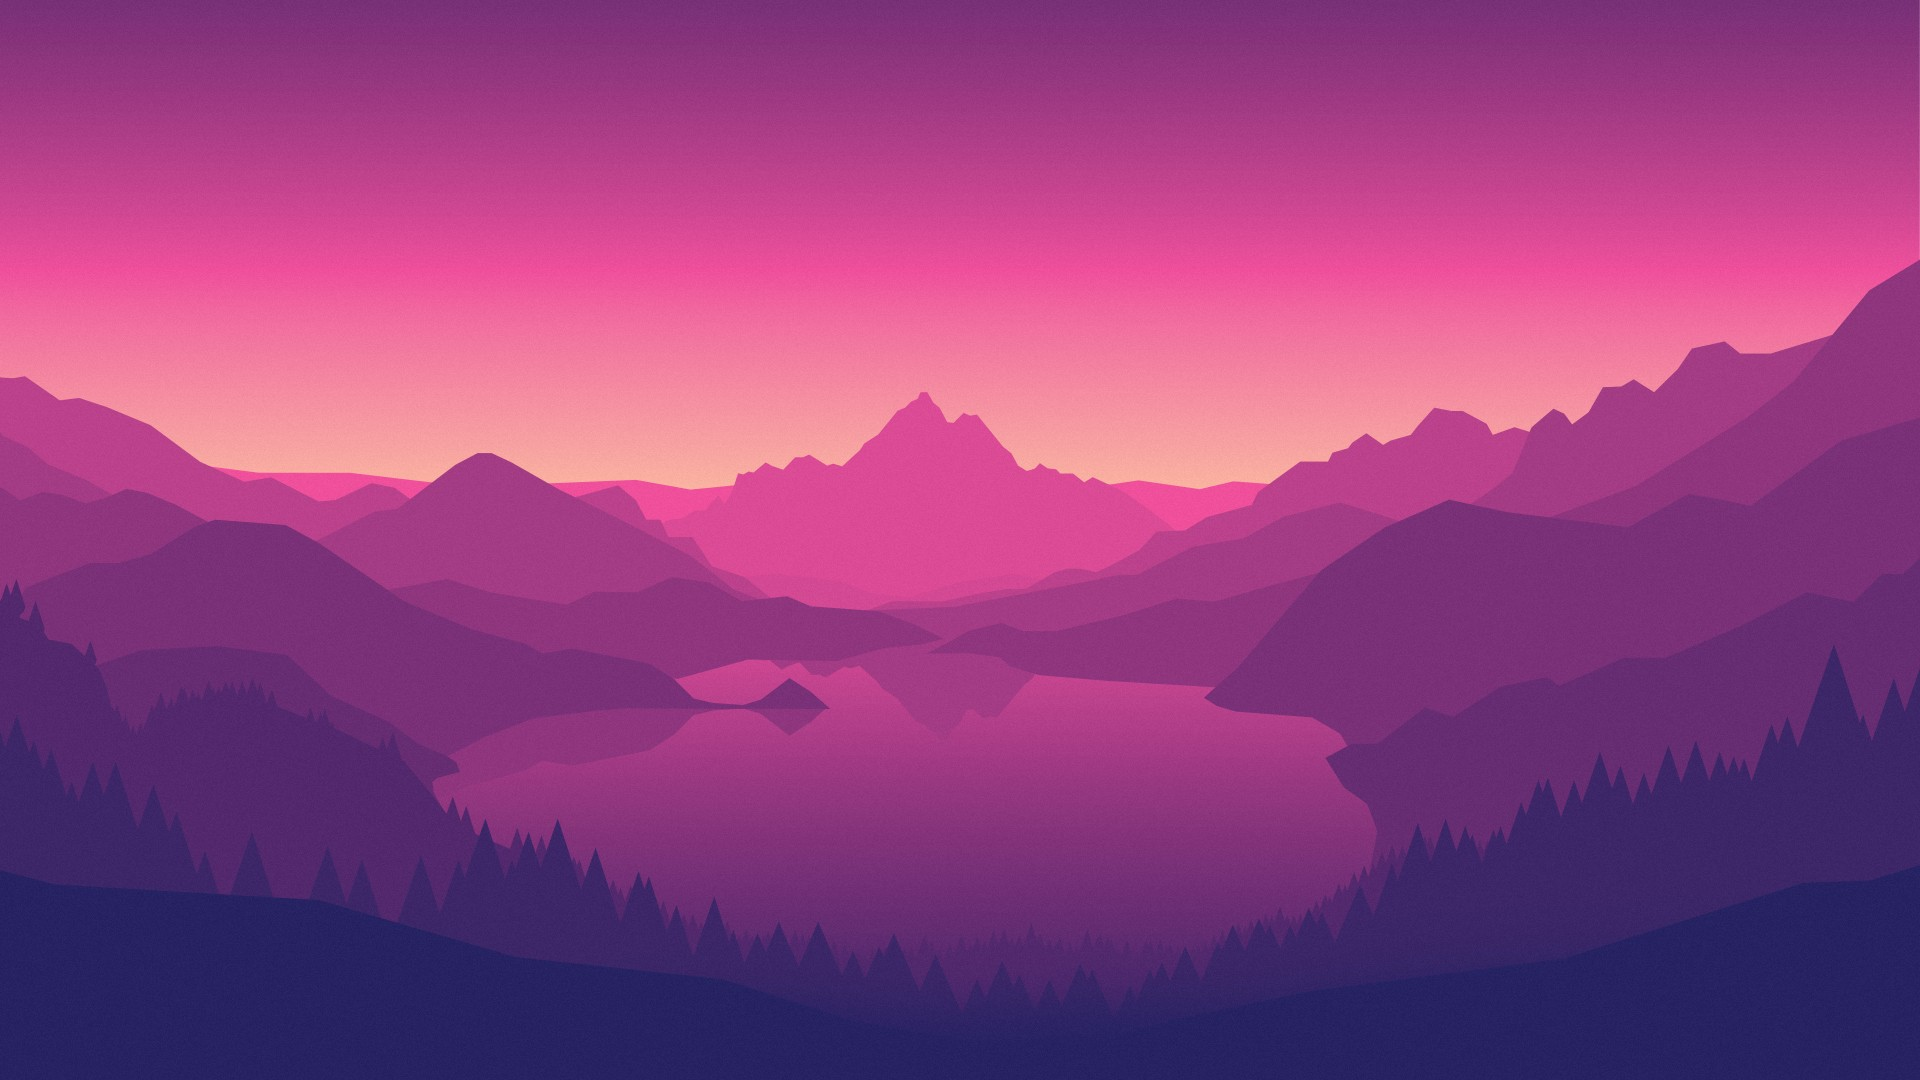 38 firewatch wallpapers download free beautiful high - 1920x1080 nature background ...